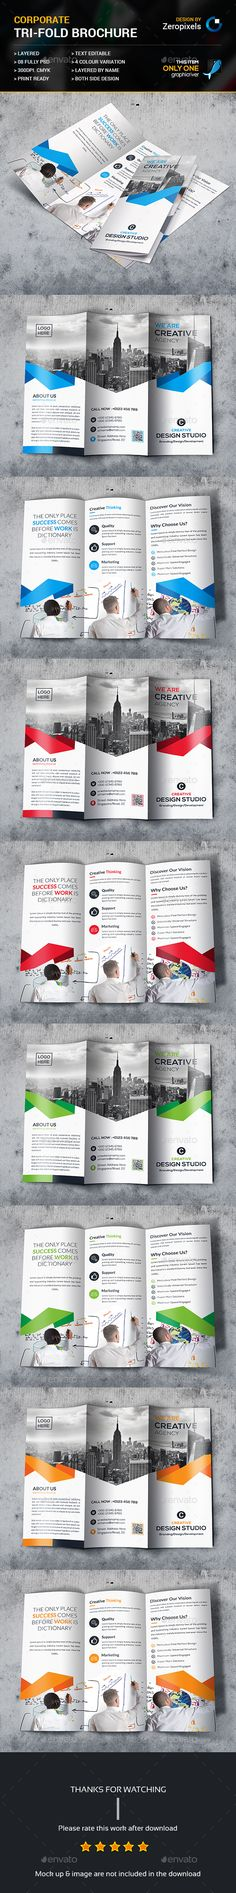 Trifold Brochure Template PSD. Download here: http://graphicriver.net/item/trifold/15953770?ref=ksioks